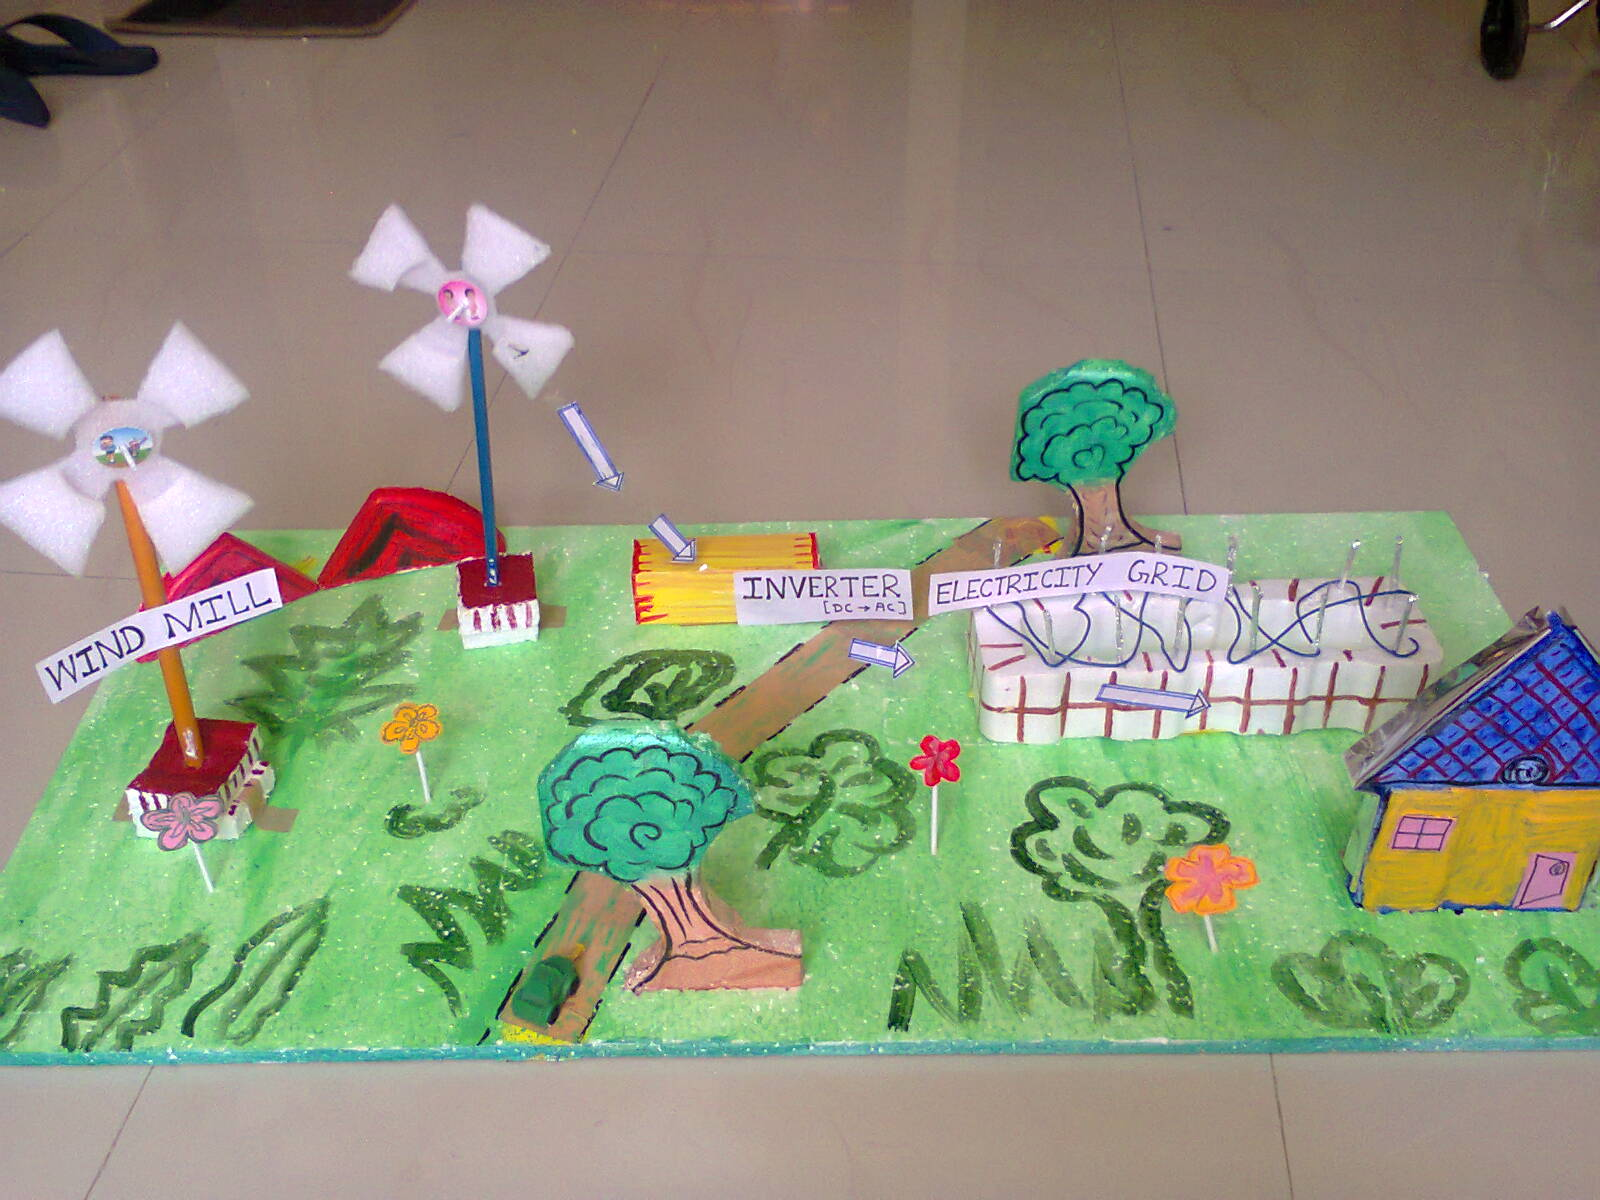 Creative of rainy ....: Wind mill - a science model